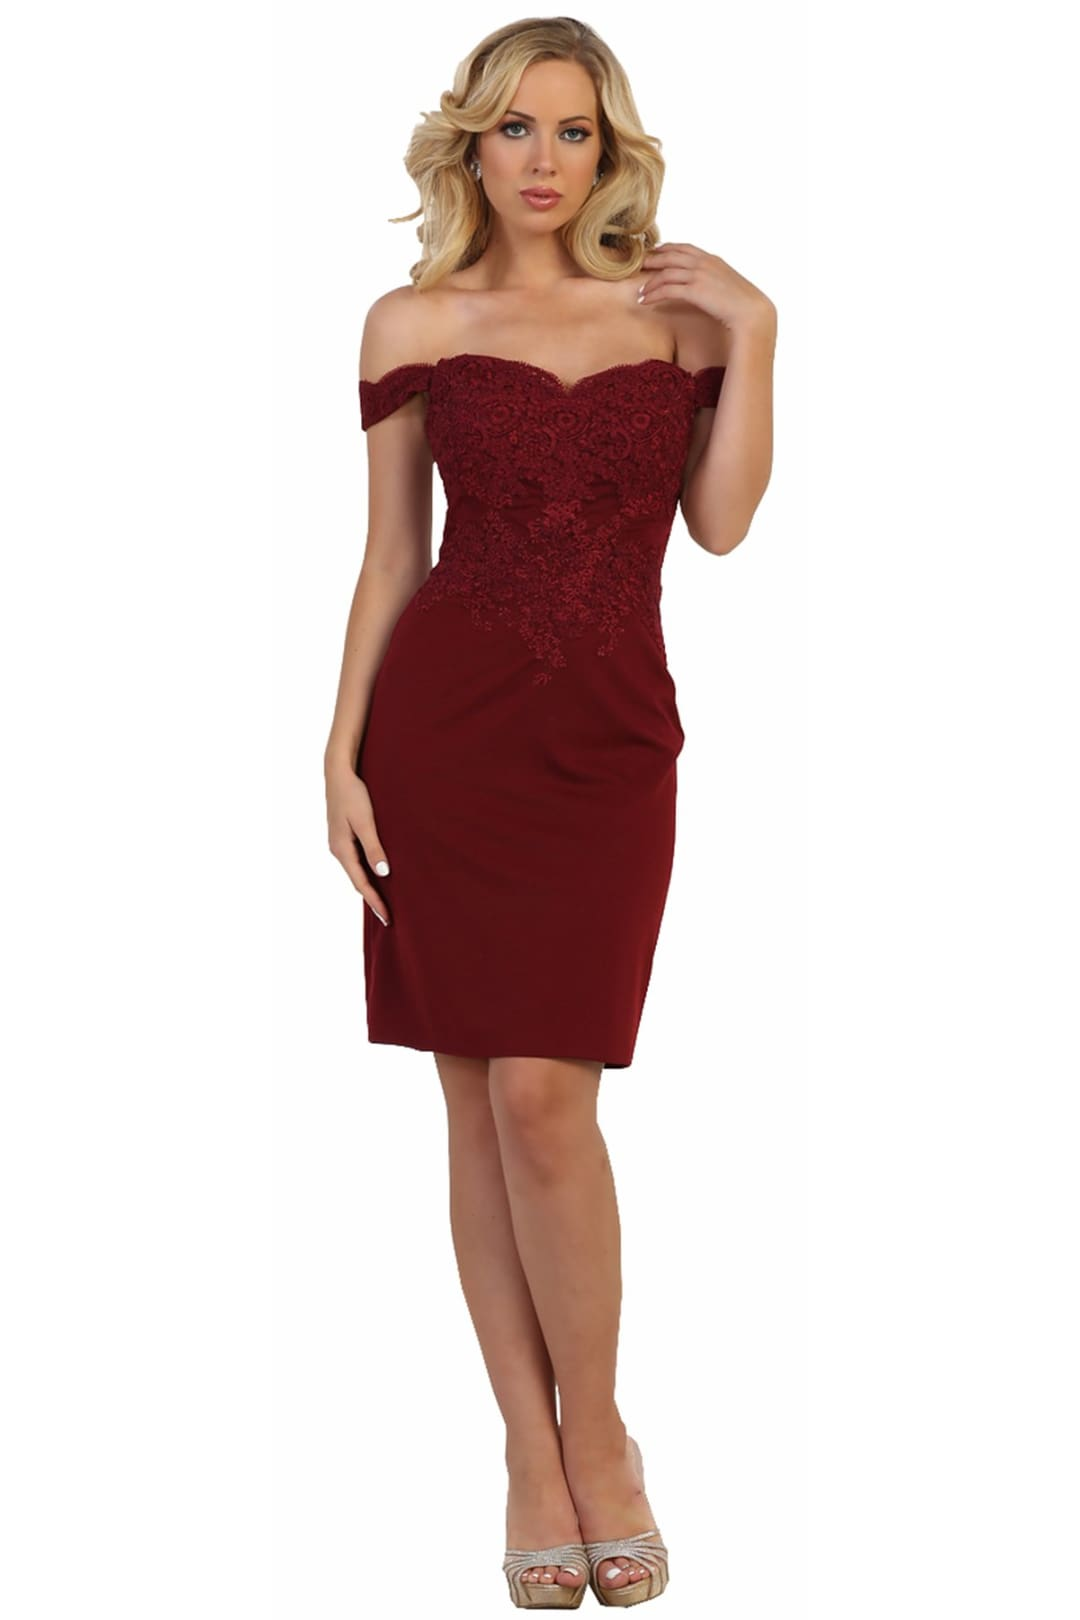 Fitted Short Semi Formal Dress - Burgundy / 12